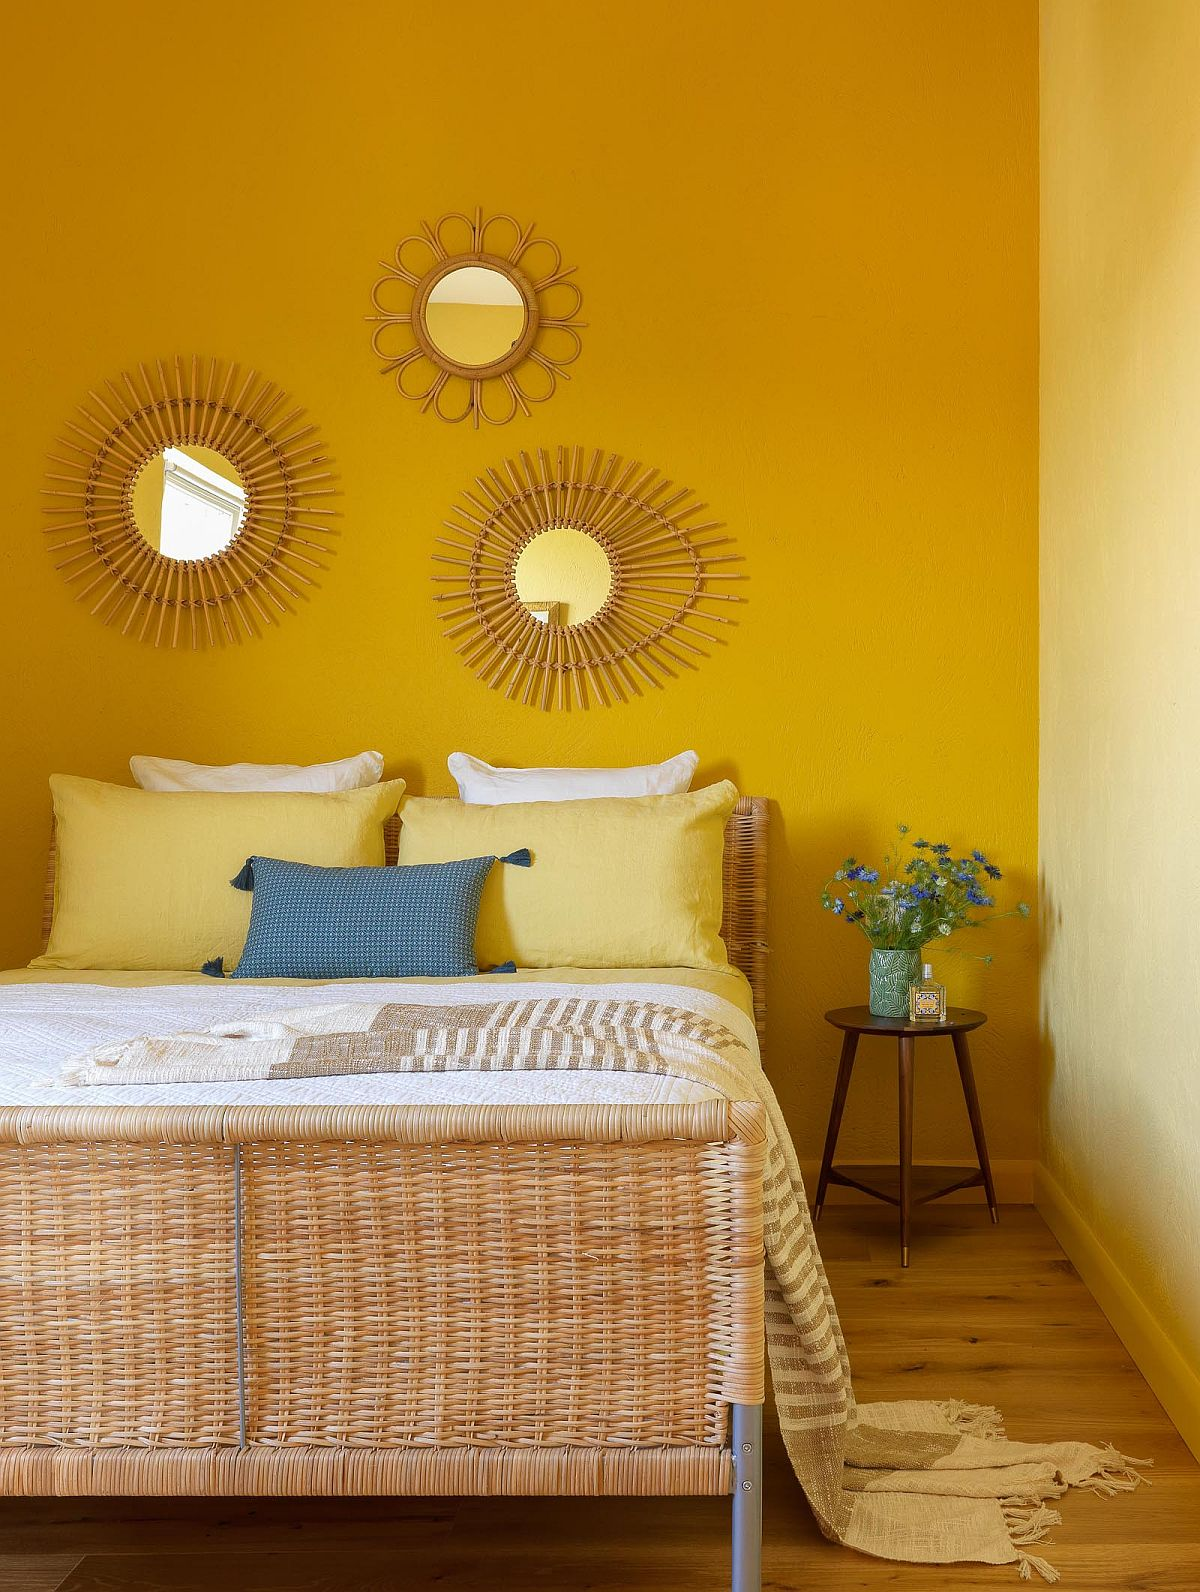 Lovely-Modern-Mediterranean-style-bedroom-with-yellow-walls-feels-bright-and-inviting-65996